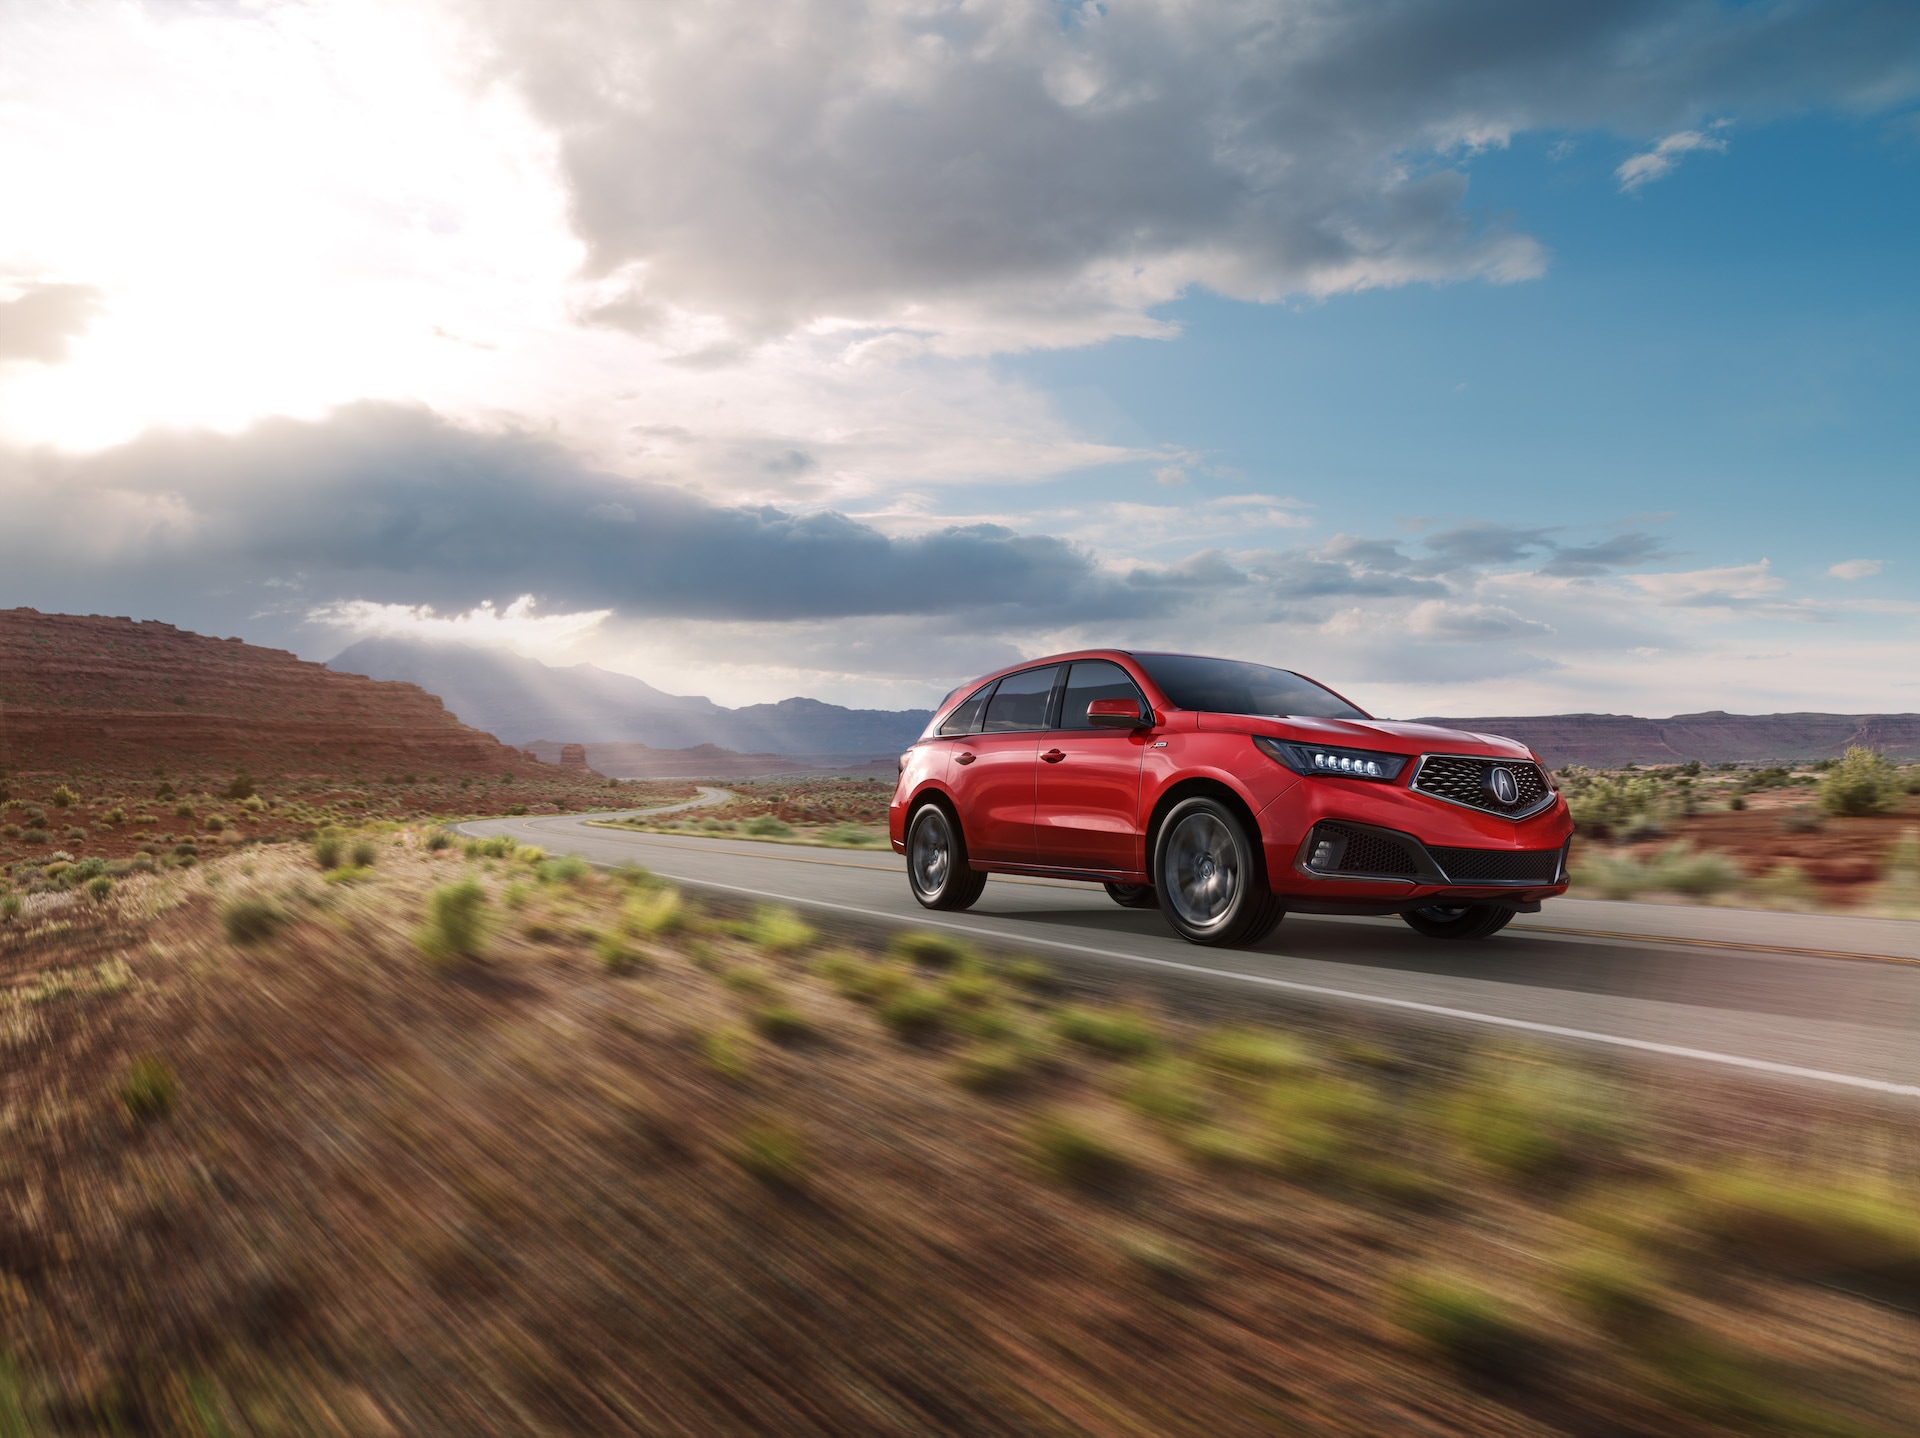 Compare the 2020 Lexus RX & the 2020 Acura MDX at Acura Hunt Valley | Red 2020 Acura MDX driving on desert road